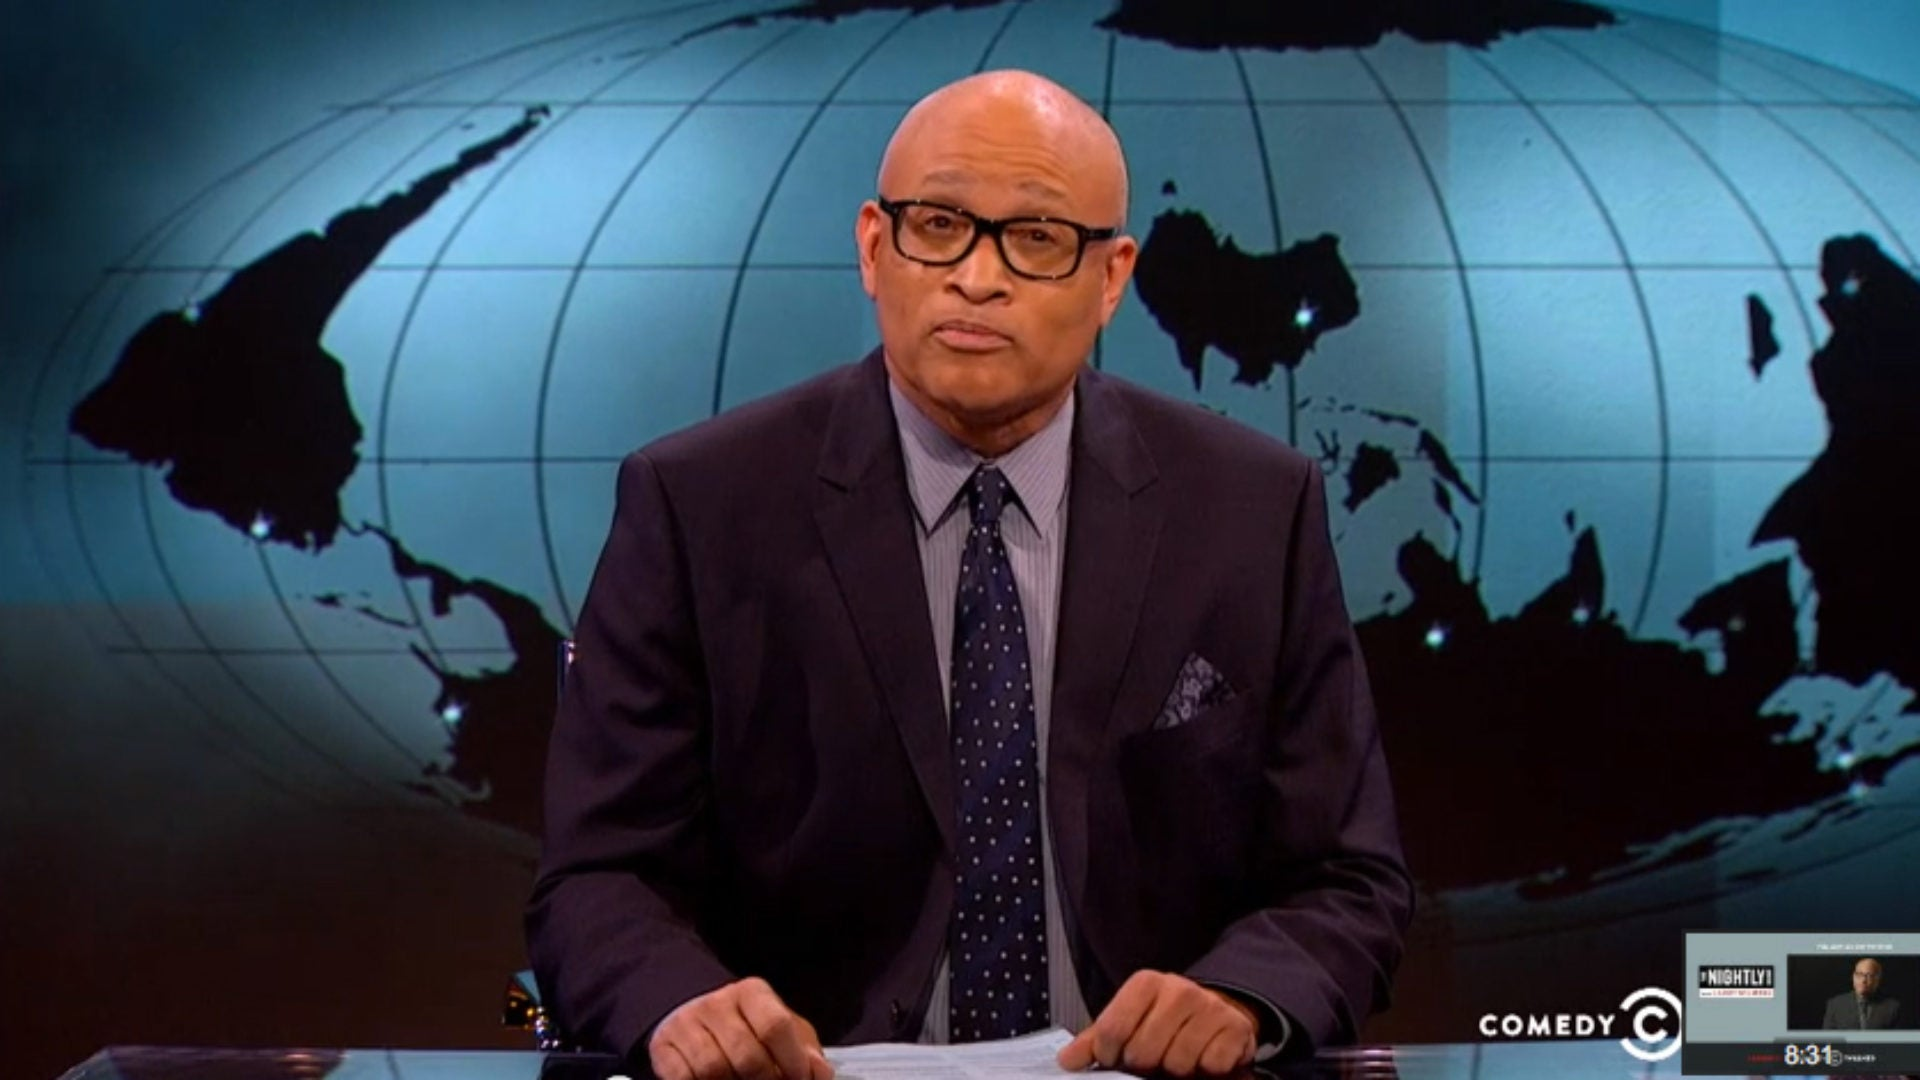 Say It Ain't So! Comedy Central Cancels 'The Nightly Show With Larry Wilmore'